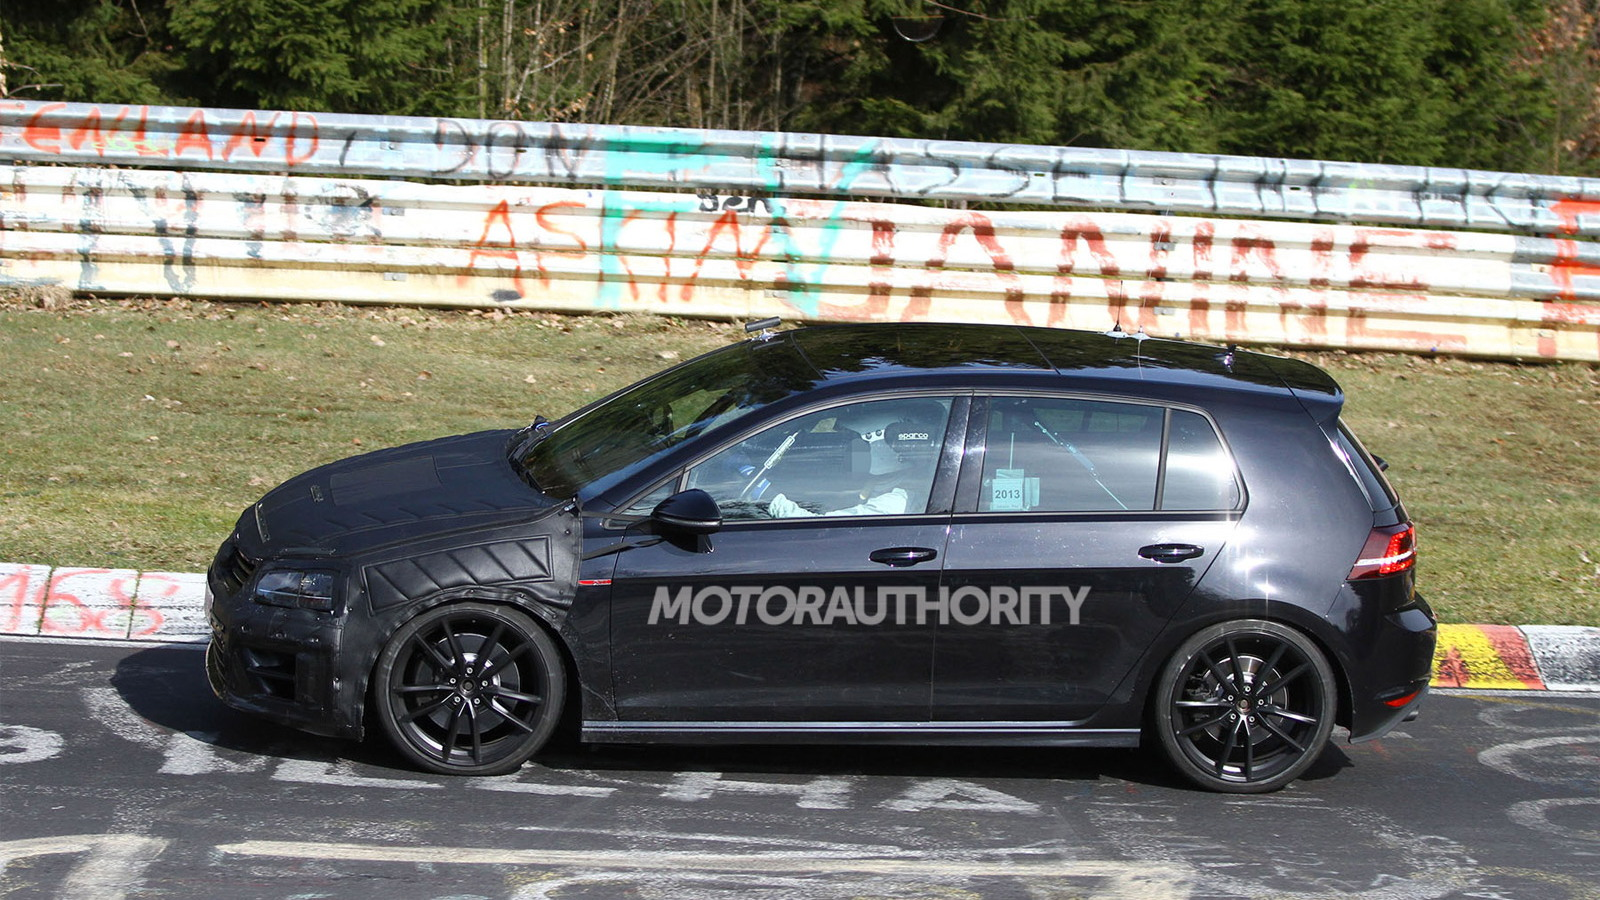 2015 大众汽车 Golf R spy shots